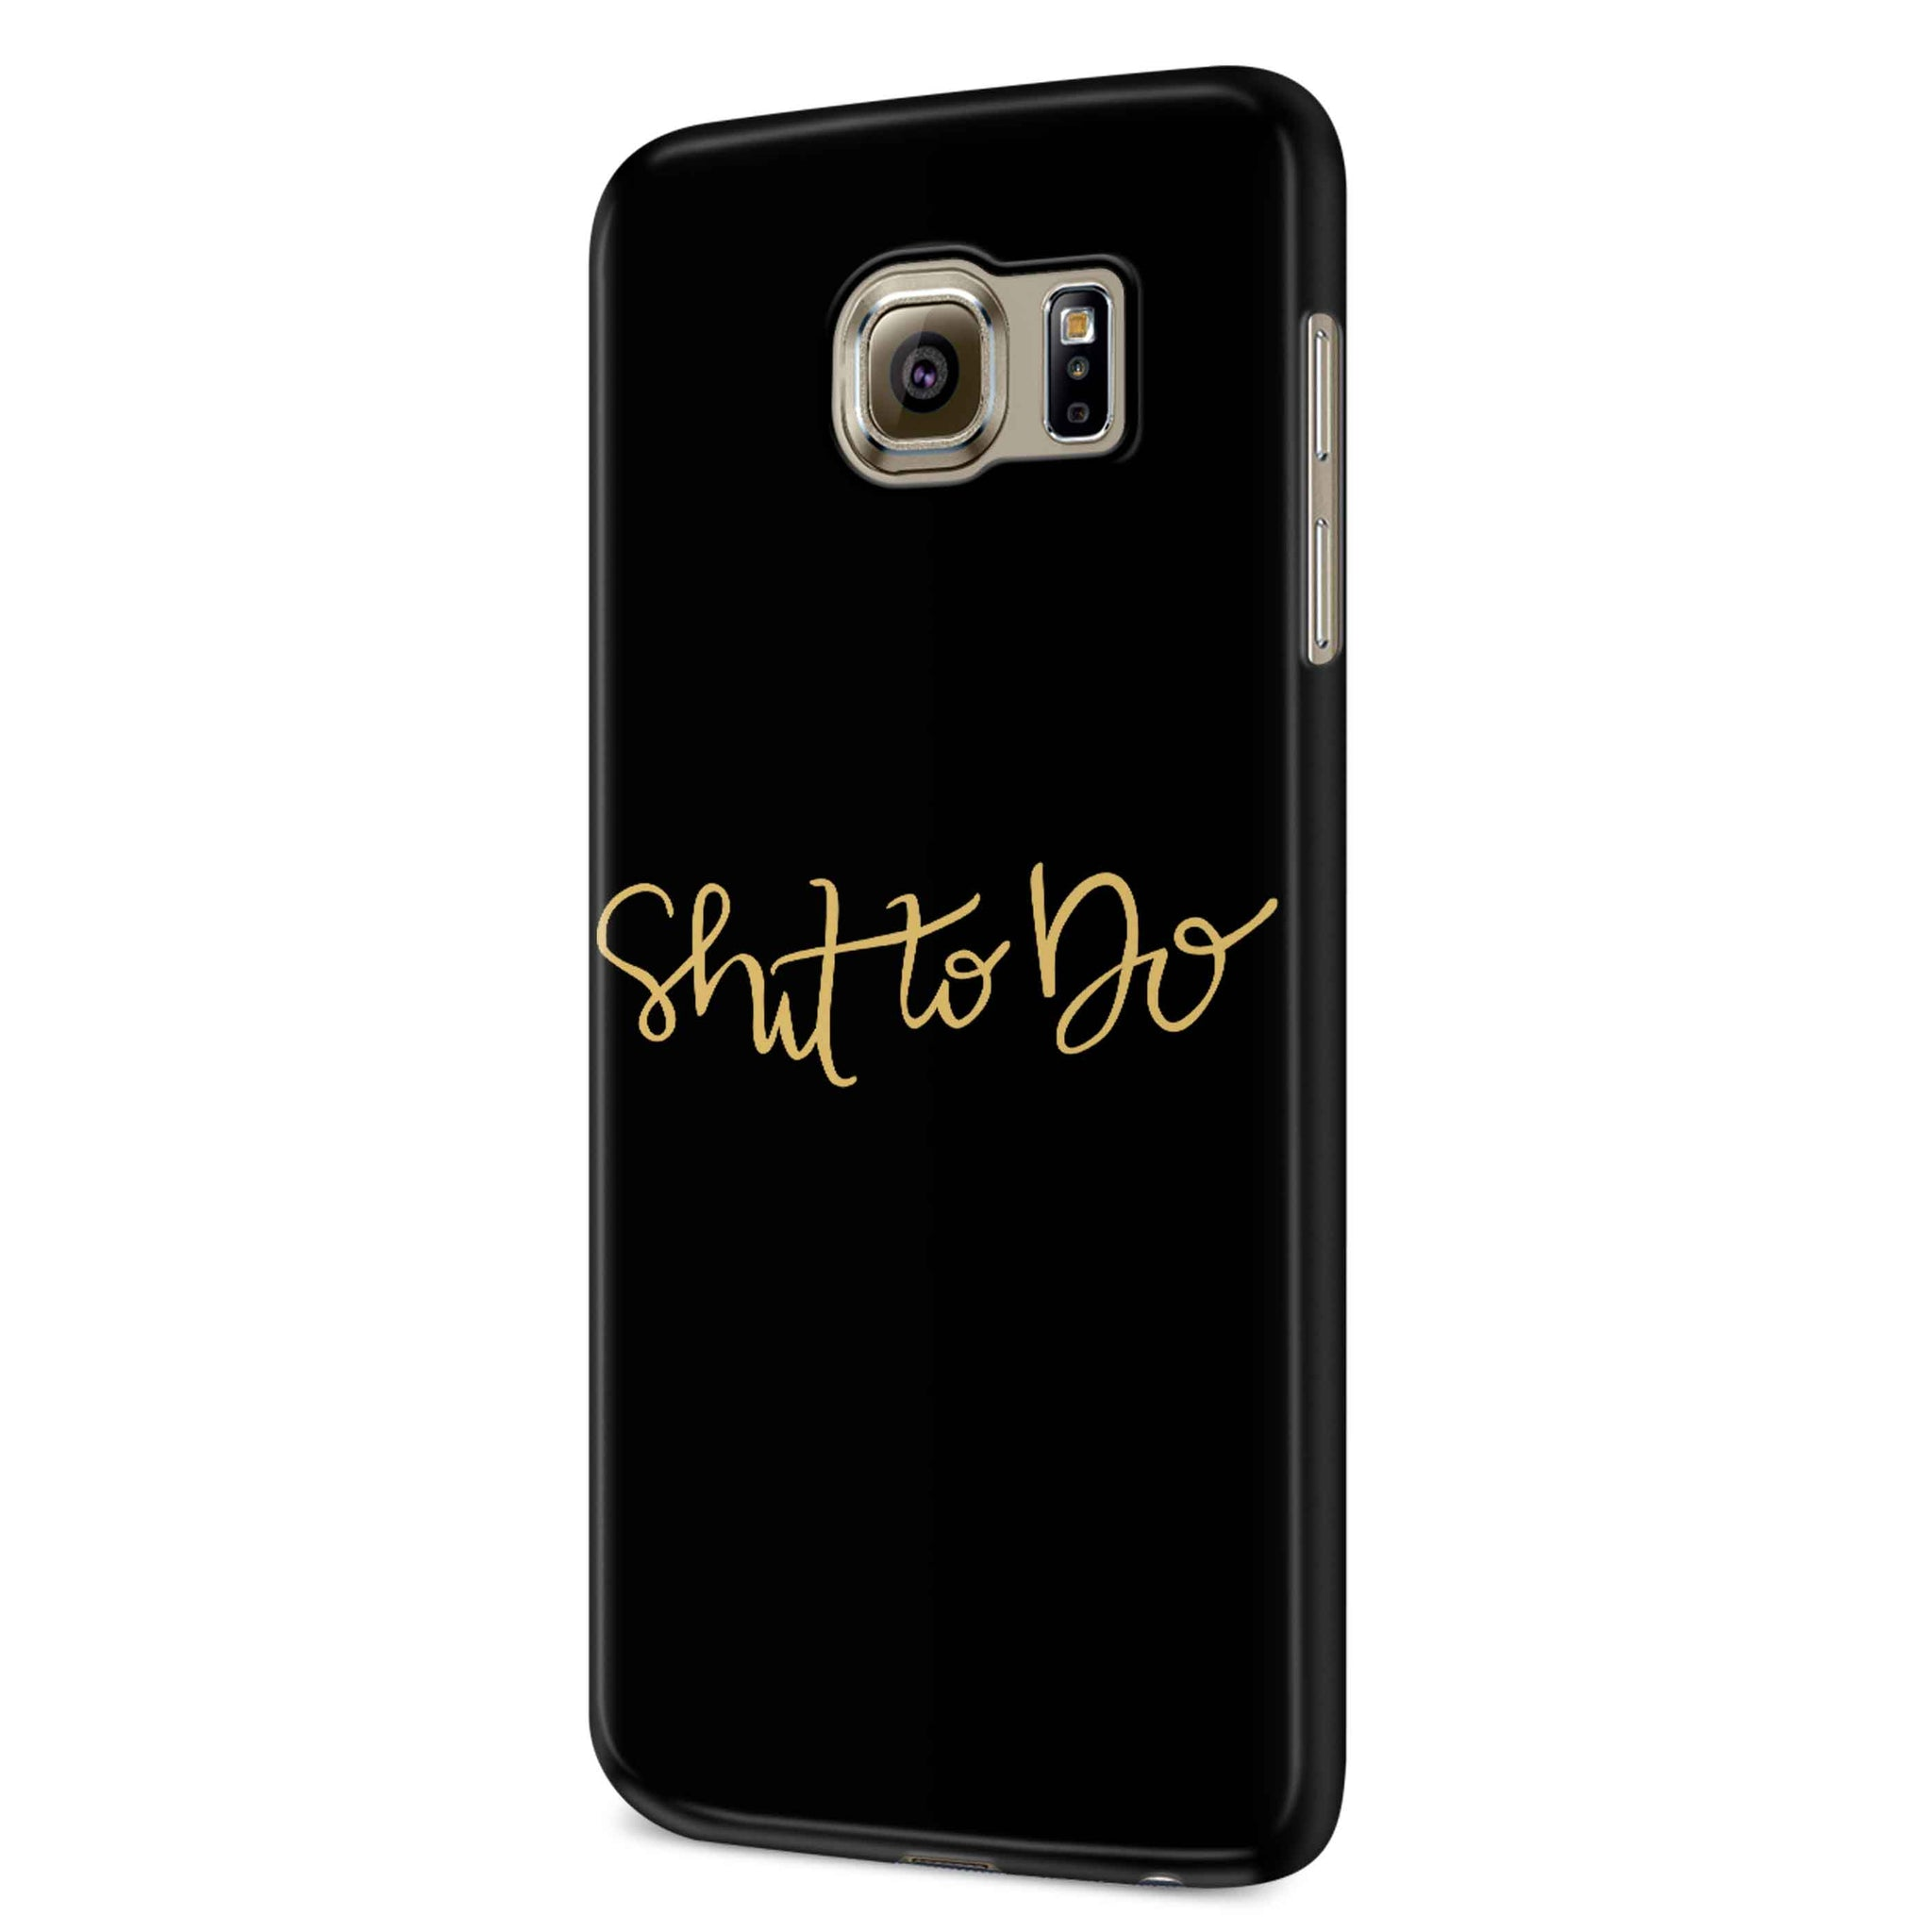 Shit To Do Samsung Galaxy S6 S6 Edge Plus/ S7 S7 Edge / S8 S8 Plus / S9 S9 plus 3D Case